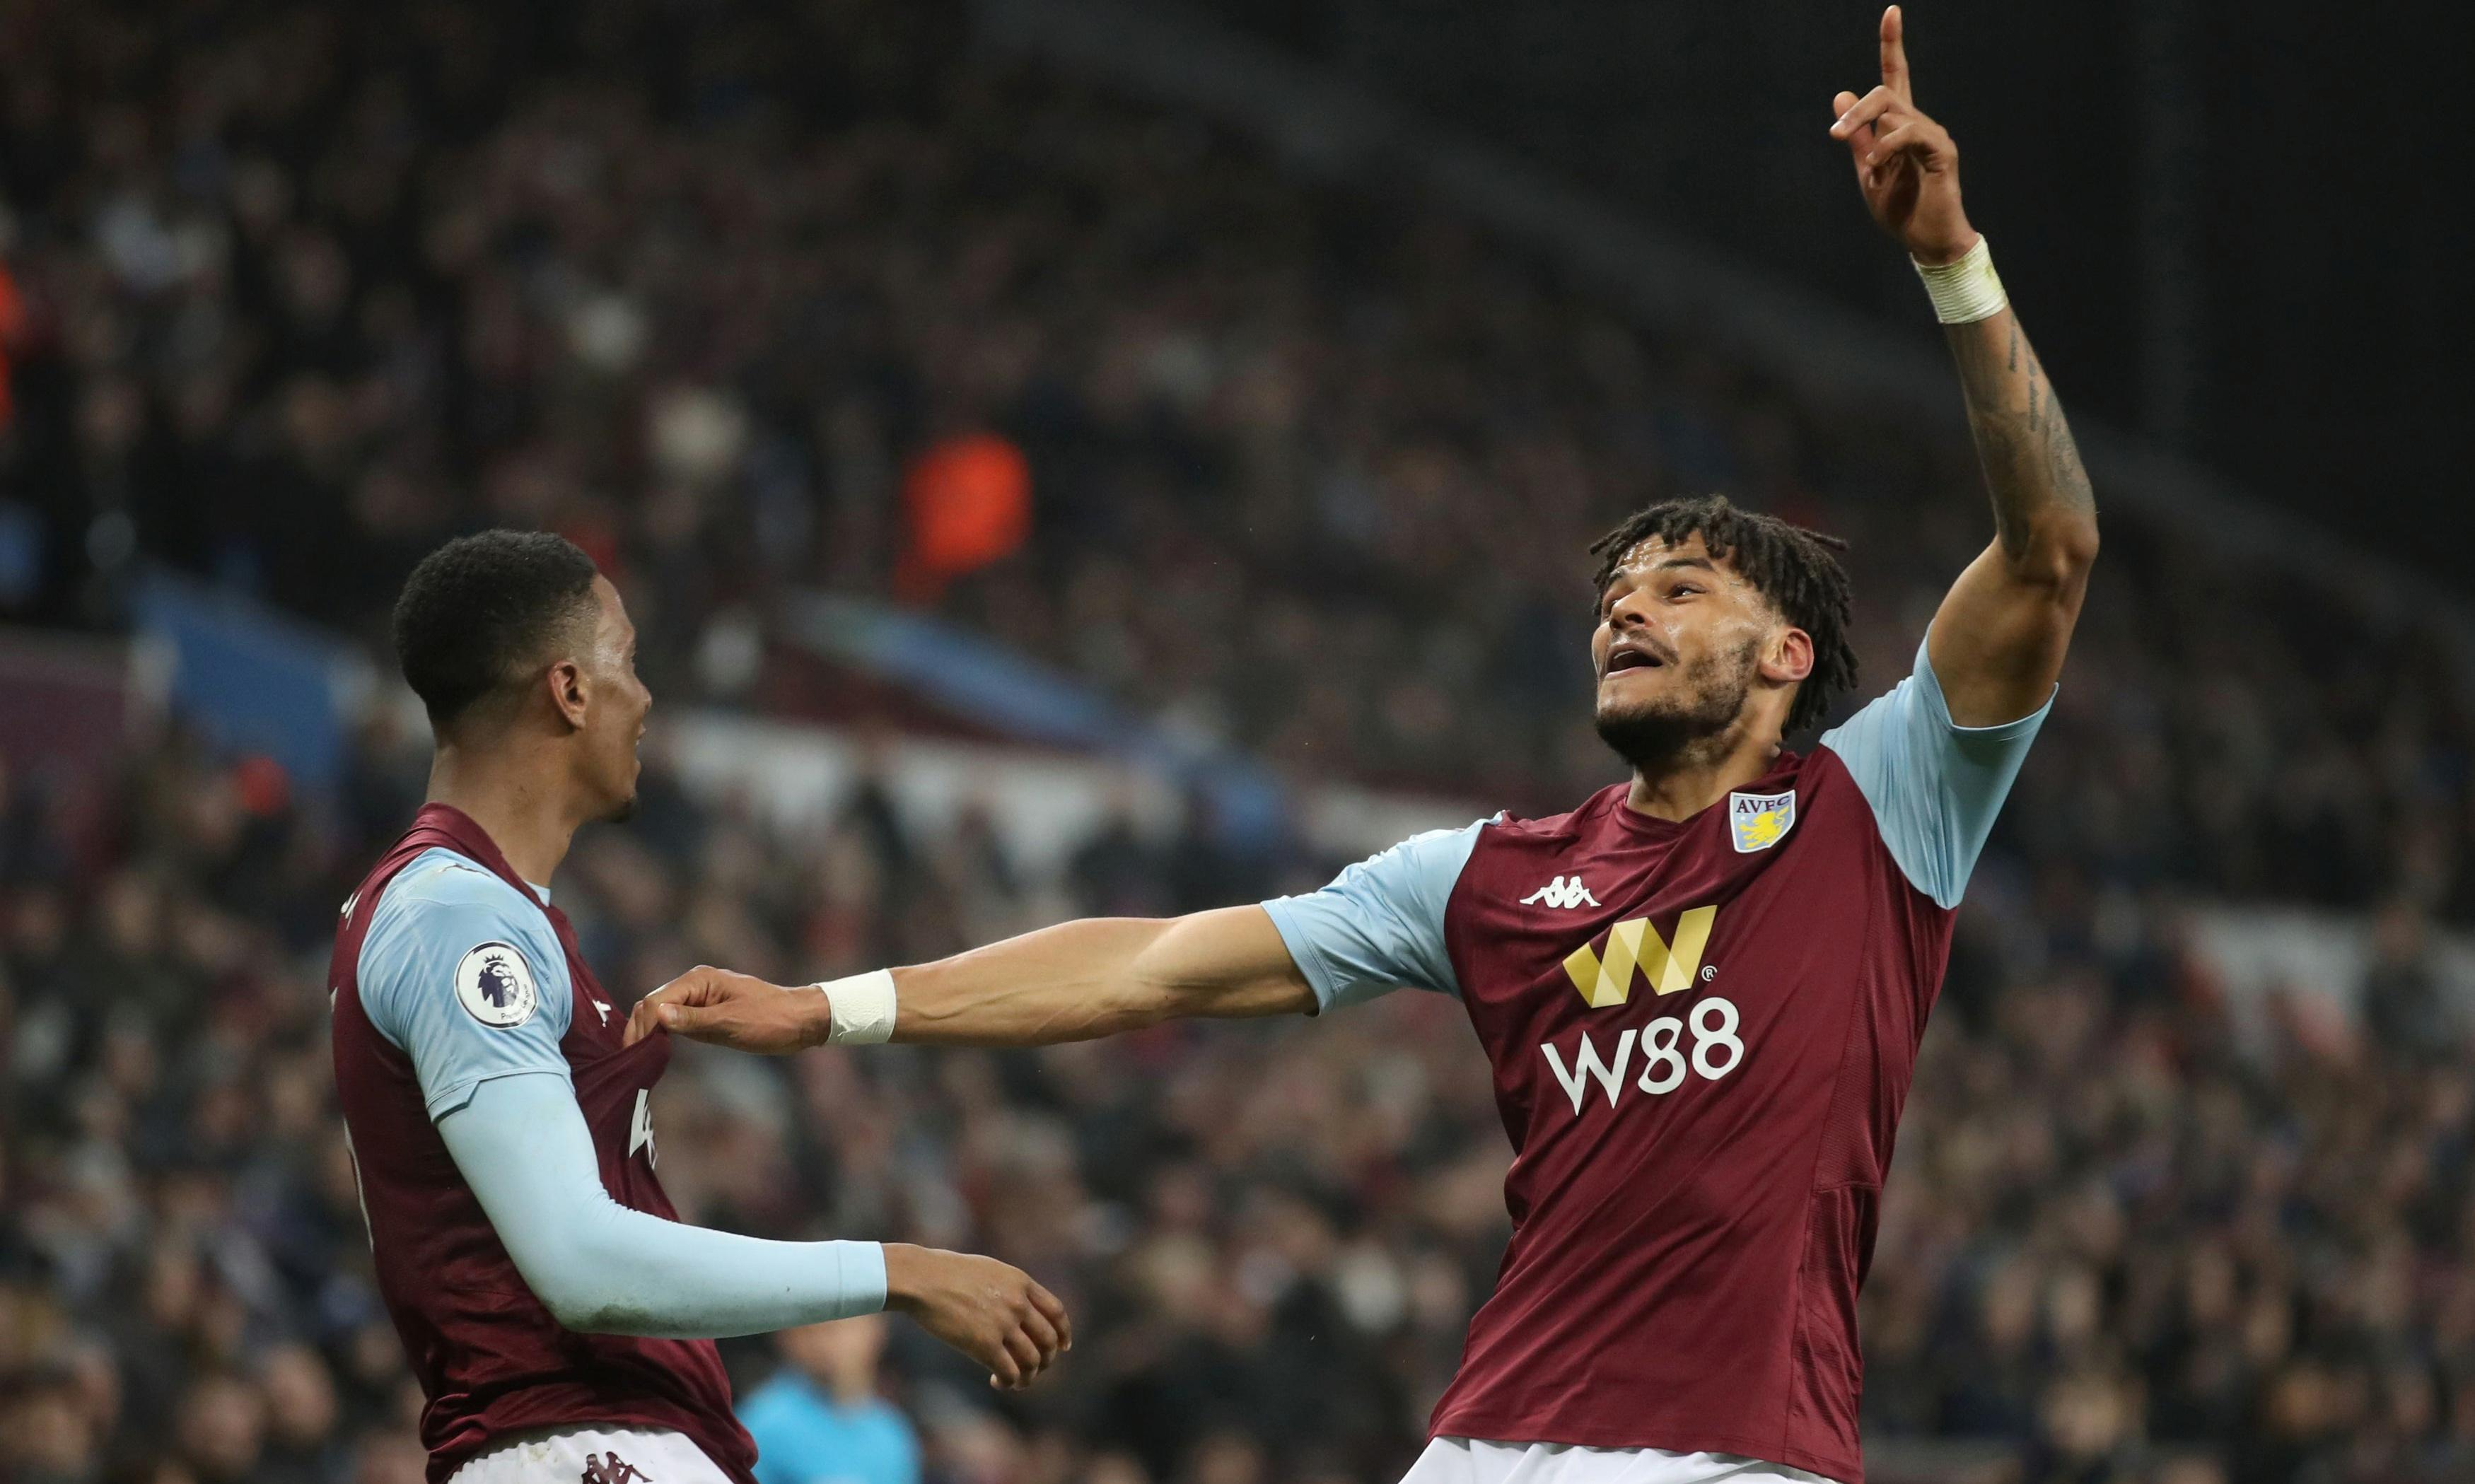 Aston Villa haul themselves out of bottom three with late win over Watford